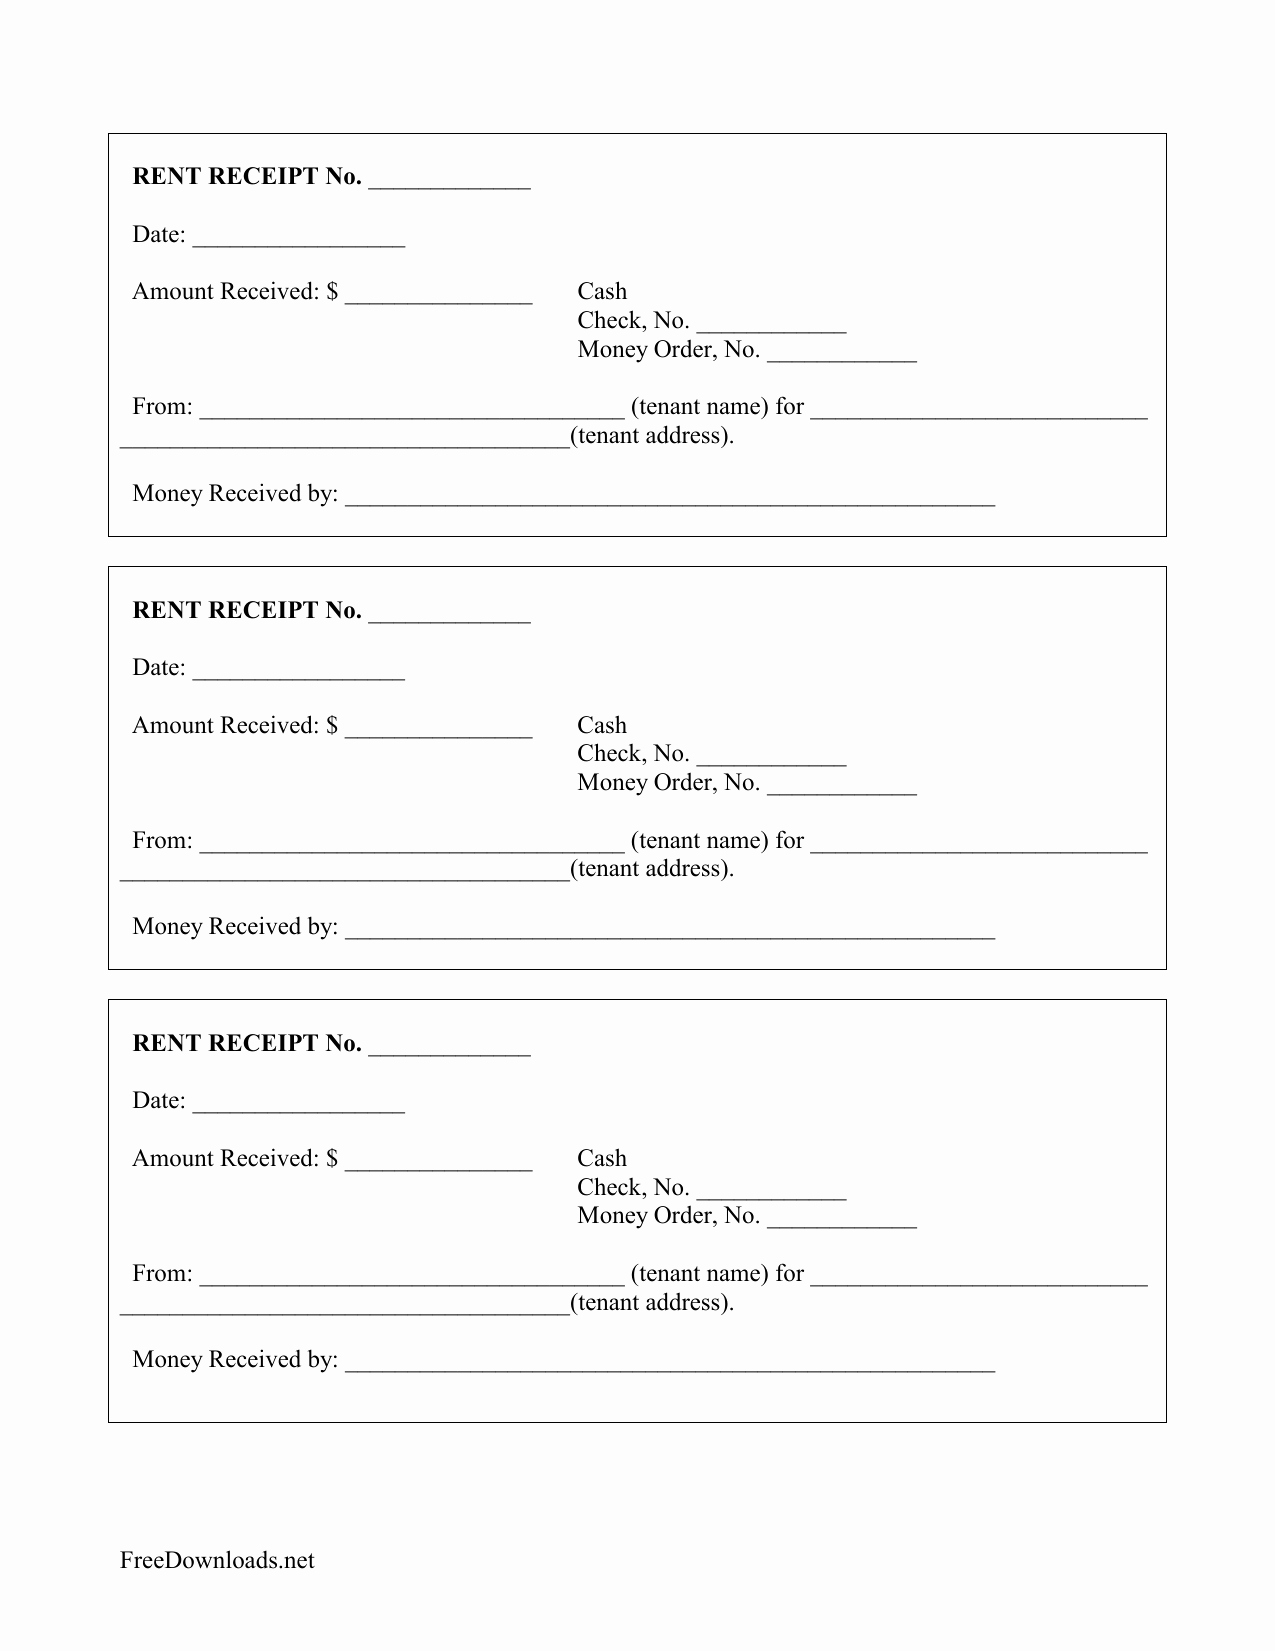 Rental Receipt Template Pdf Elegant Download Monthly Rental Payment Receipt Template